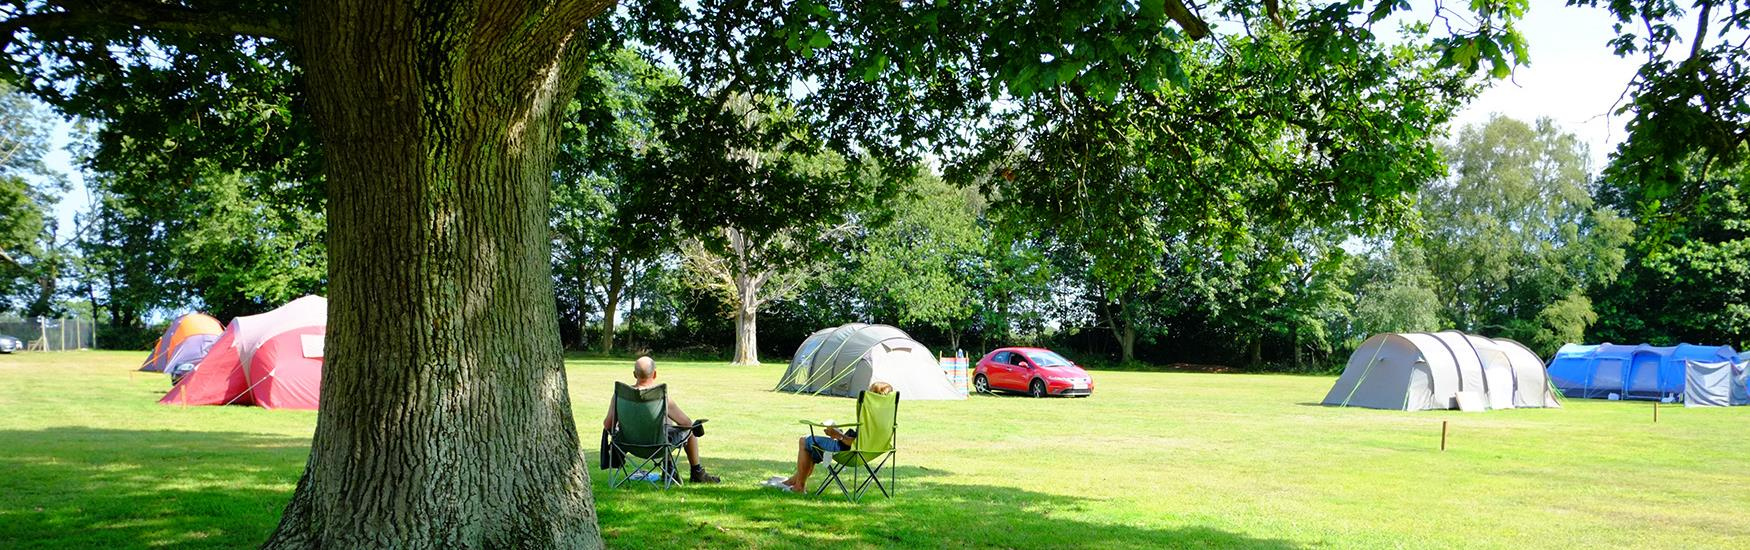 Tents pitched up on lush green grass with campers sat on chairs basking in the sun